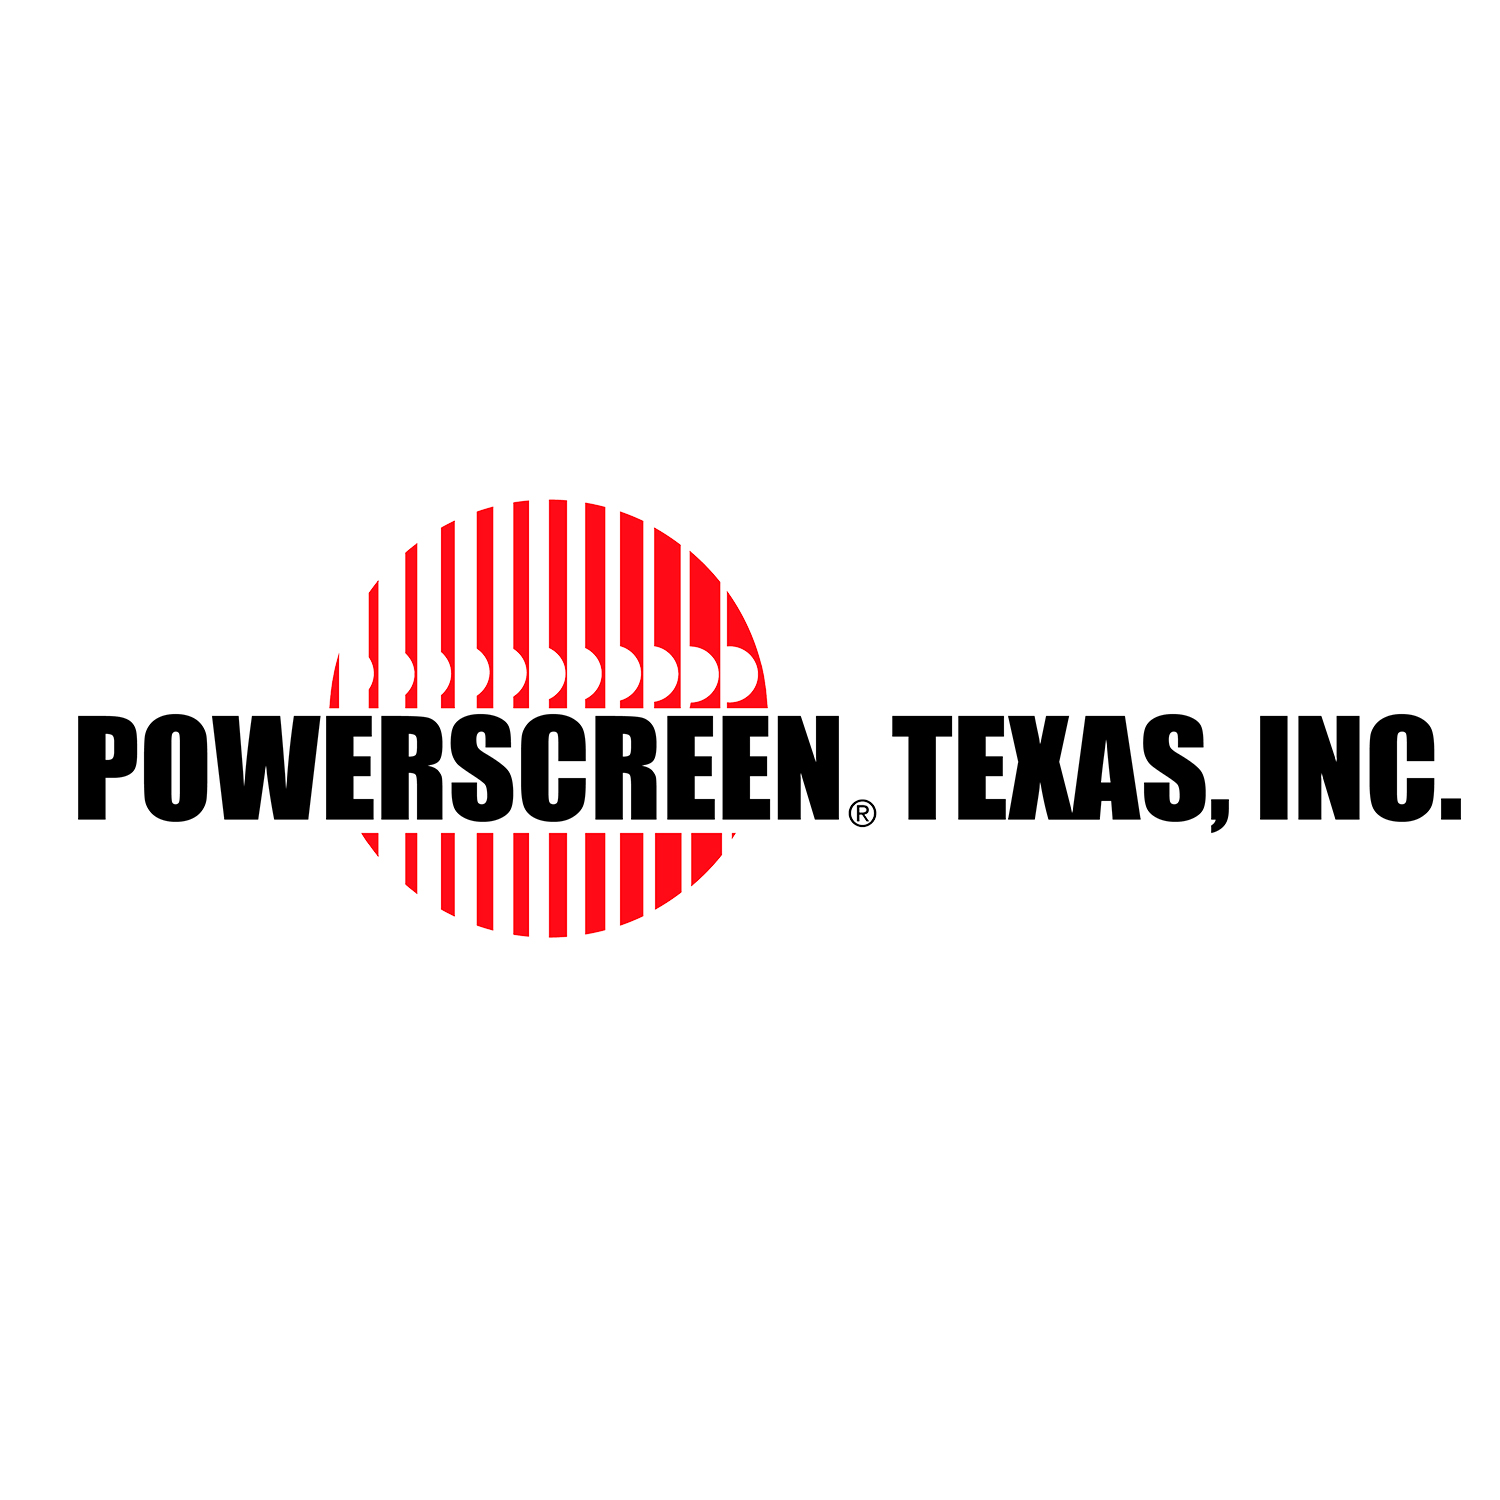 Powerscreen Texas